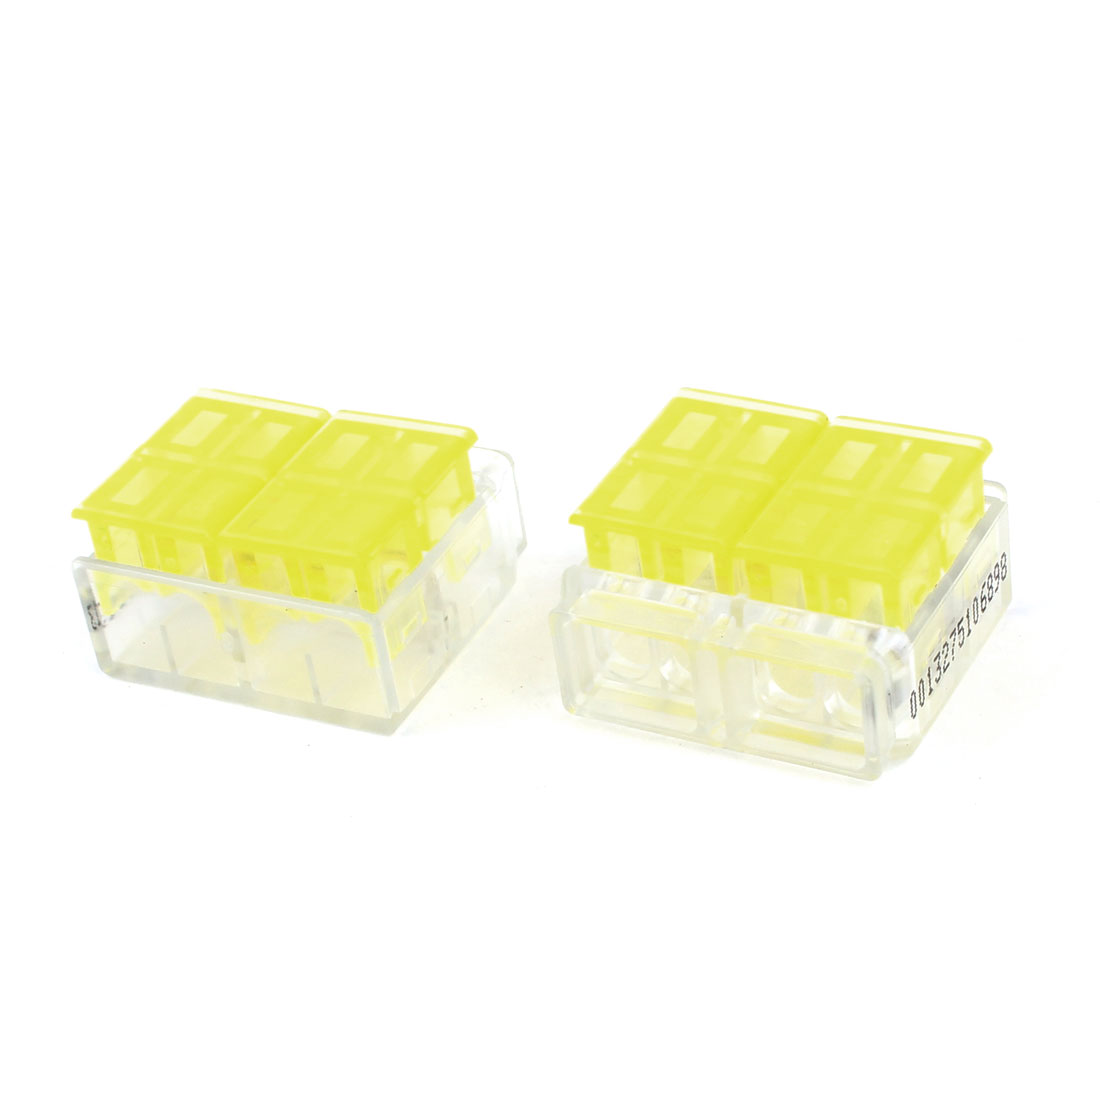 2 Pcs Plastic 1.5-2.5mm2 4 Position I-Clamp Wire Connection Clear Yellow